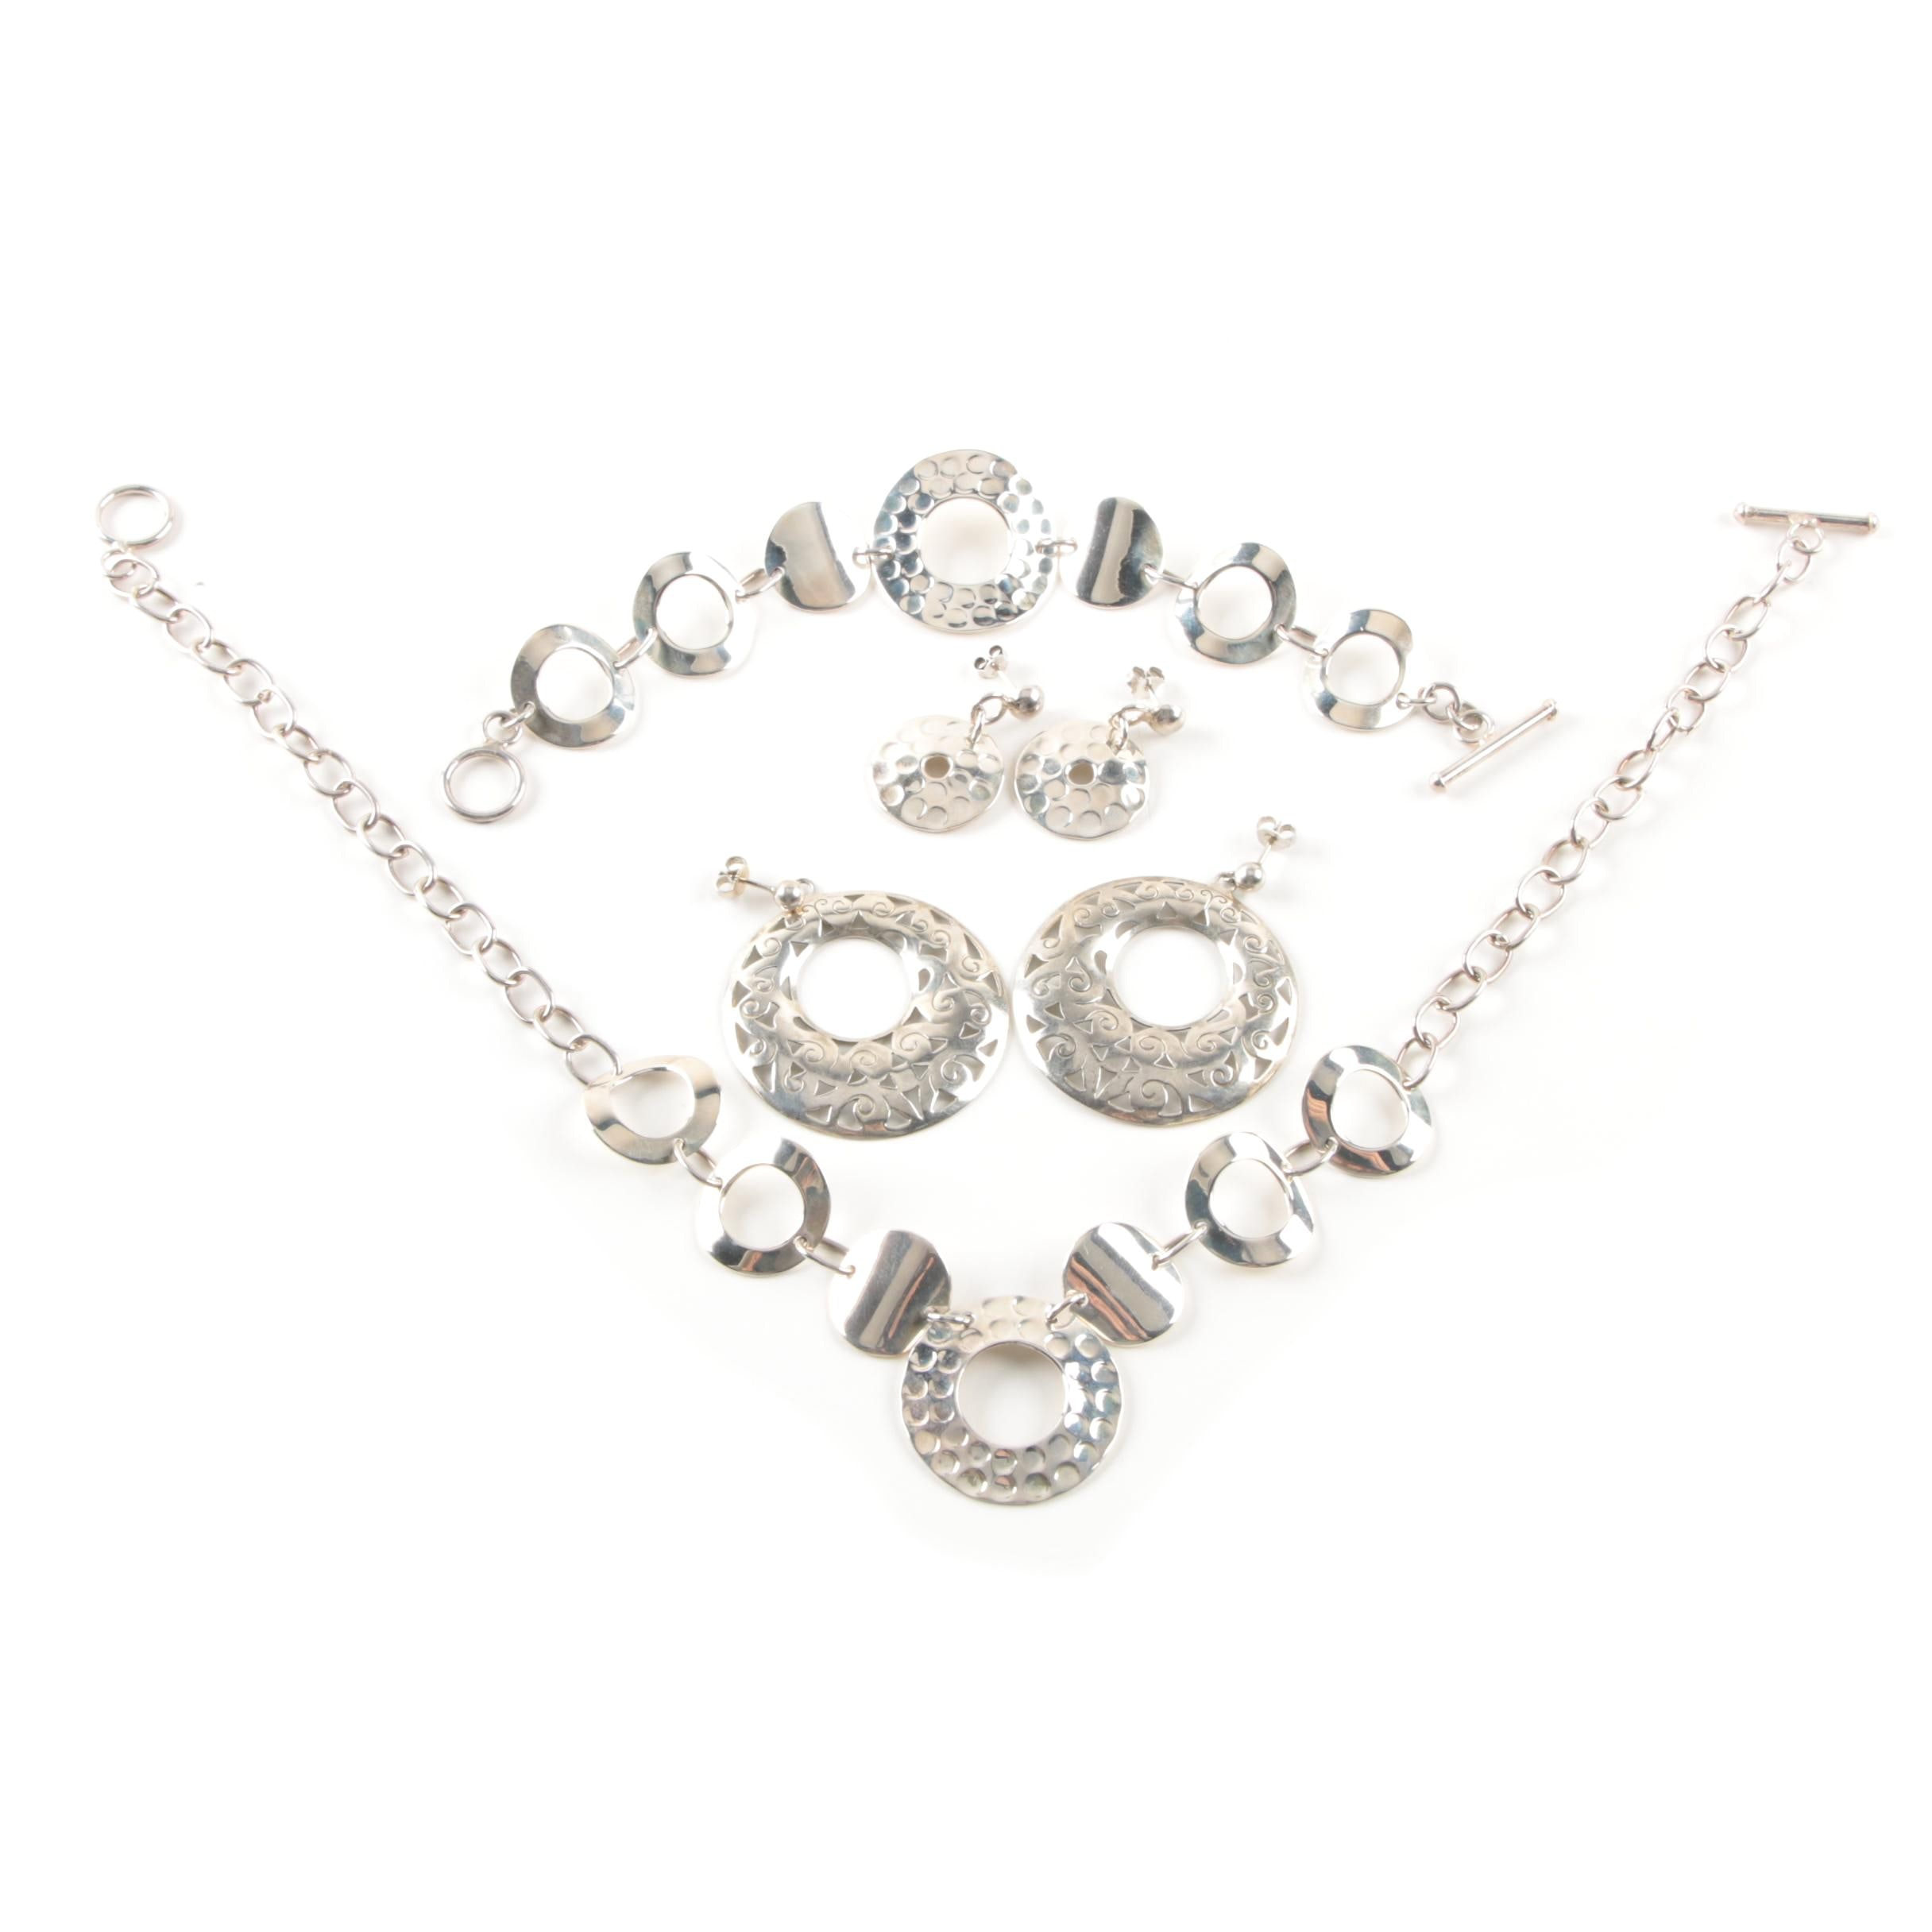 Sterling Silver Earrings, Bracelet and Necklace Includes 14K White Gold Findings